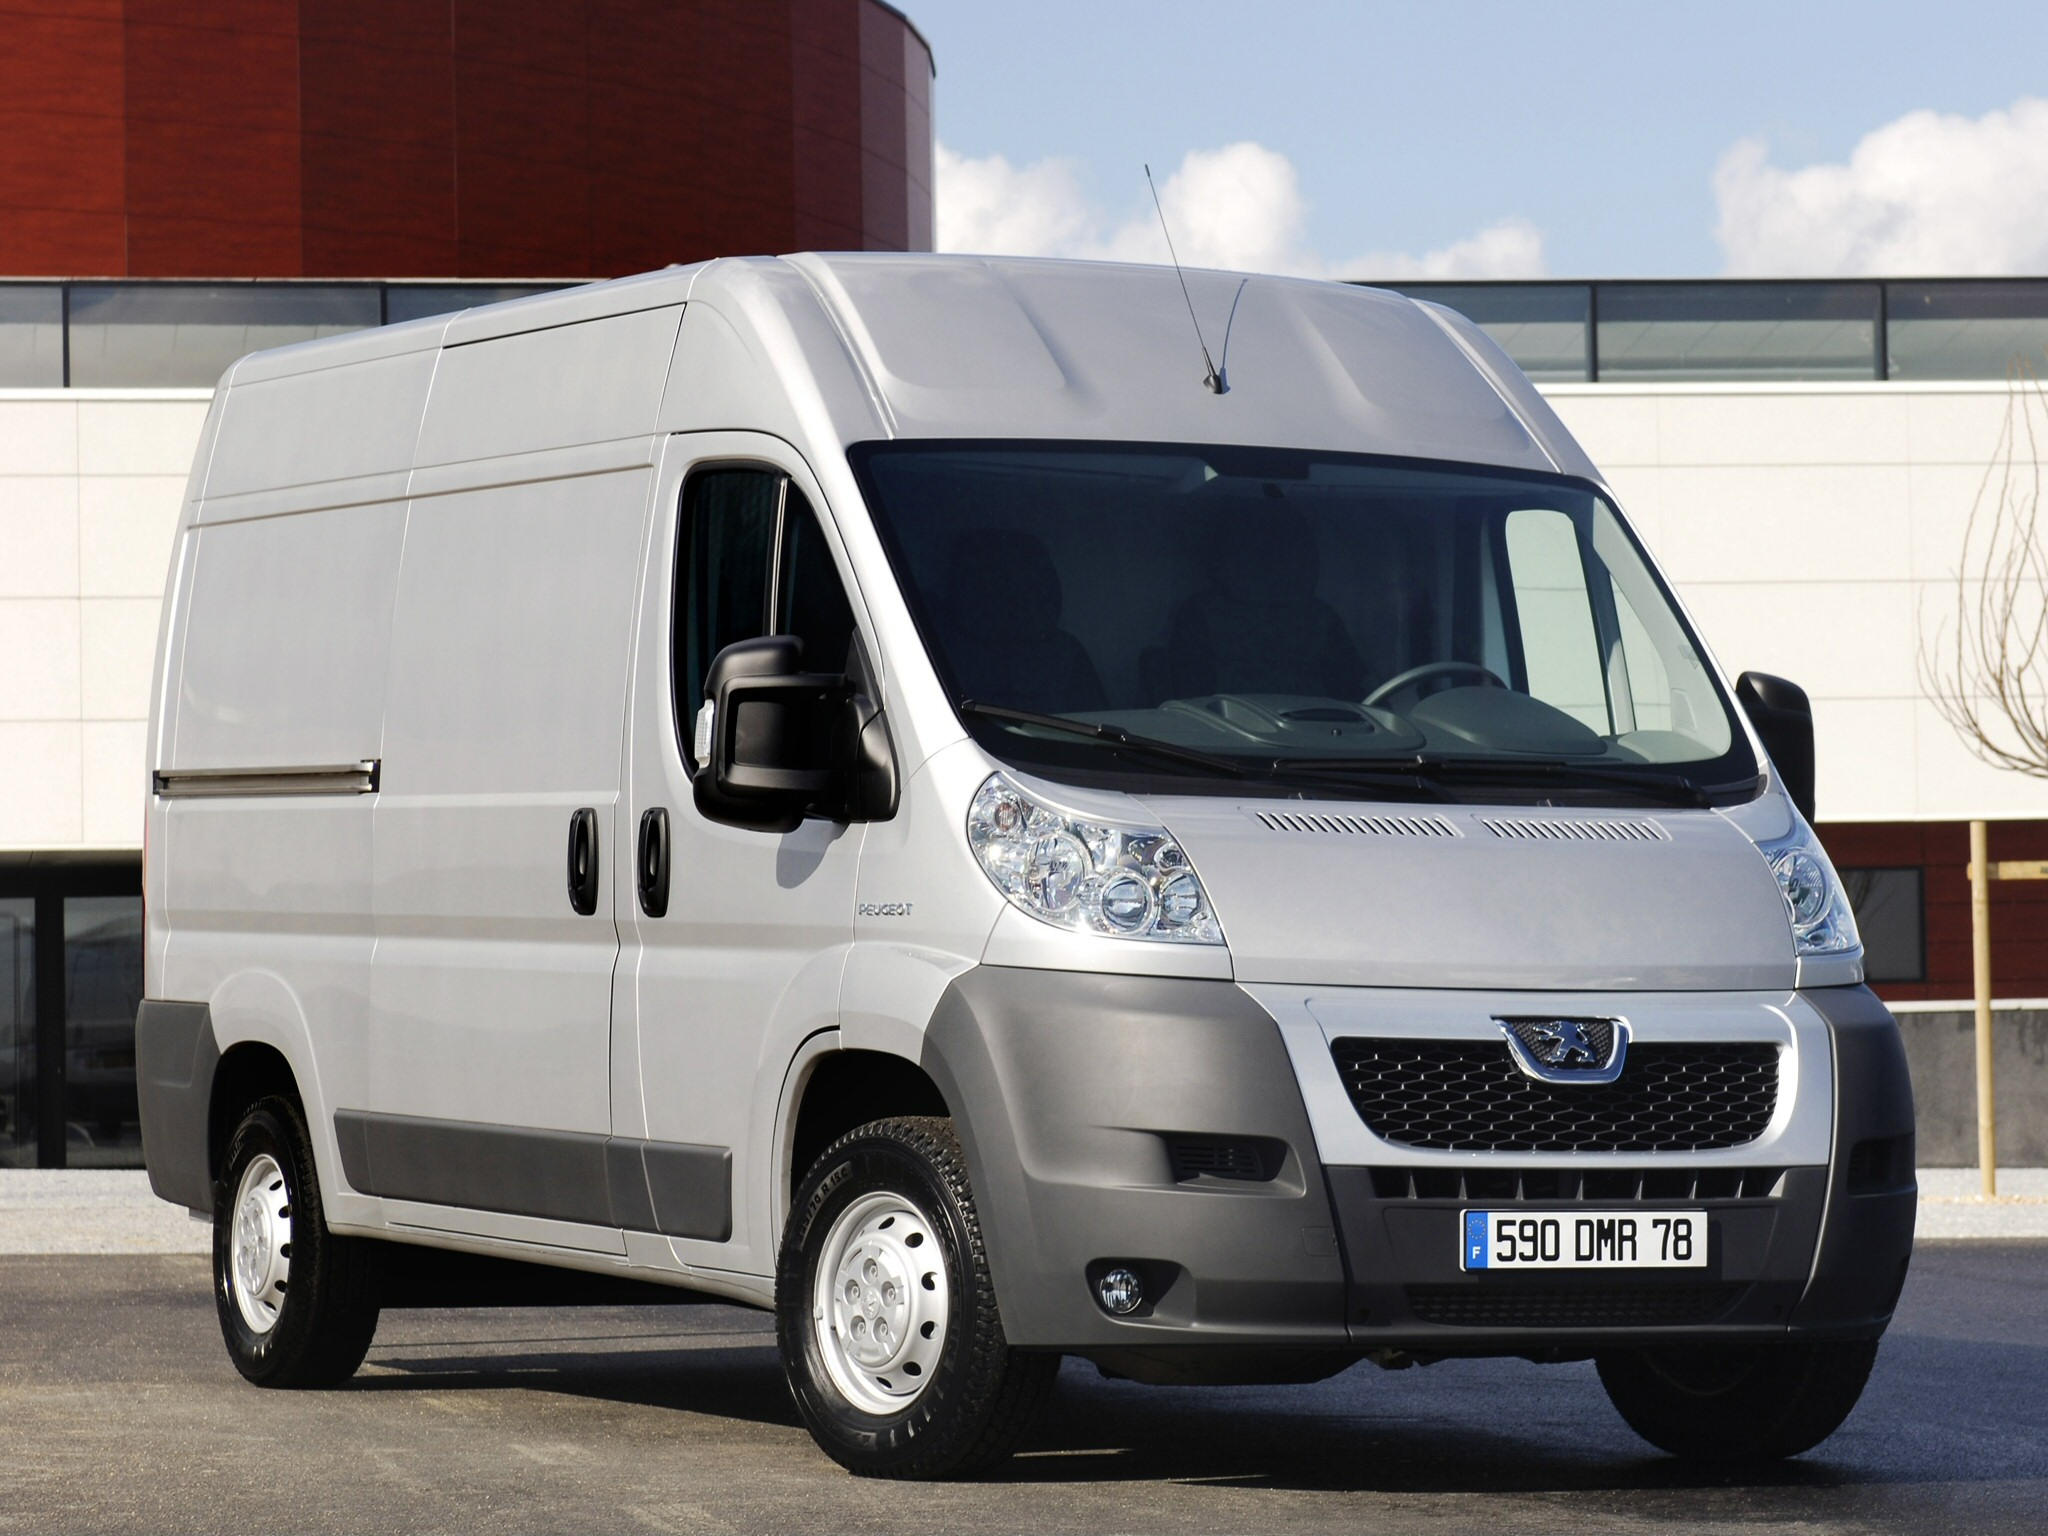 peugeot boxer light trucks commercial vehicles technical data light trucks commercial. Black Bedroom Furniture Sets. Home Design Ideas